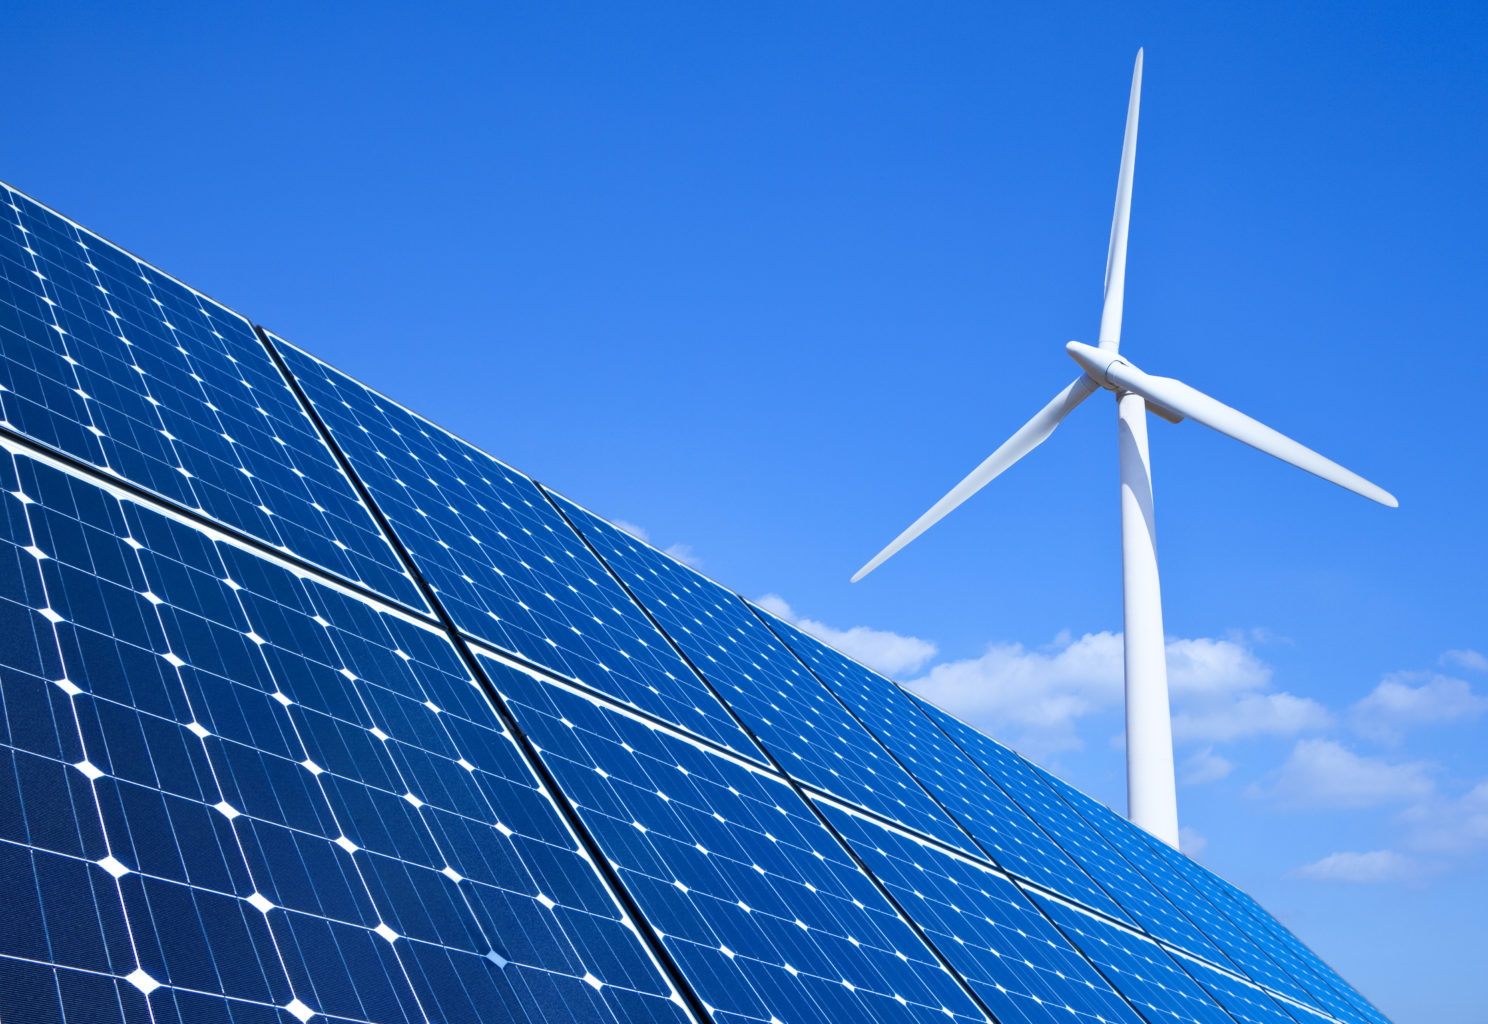 Clean, Renewable Energy: Wind, Solar, Hydro, Biomass